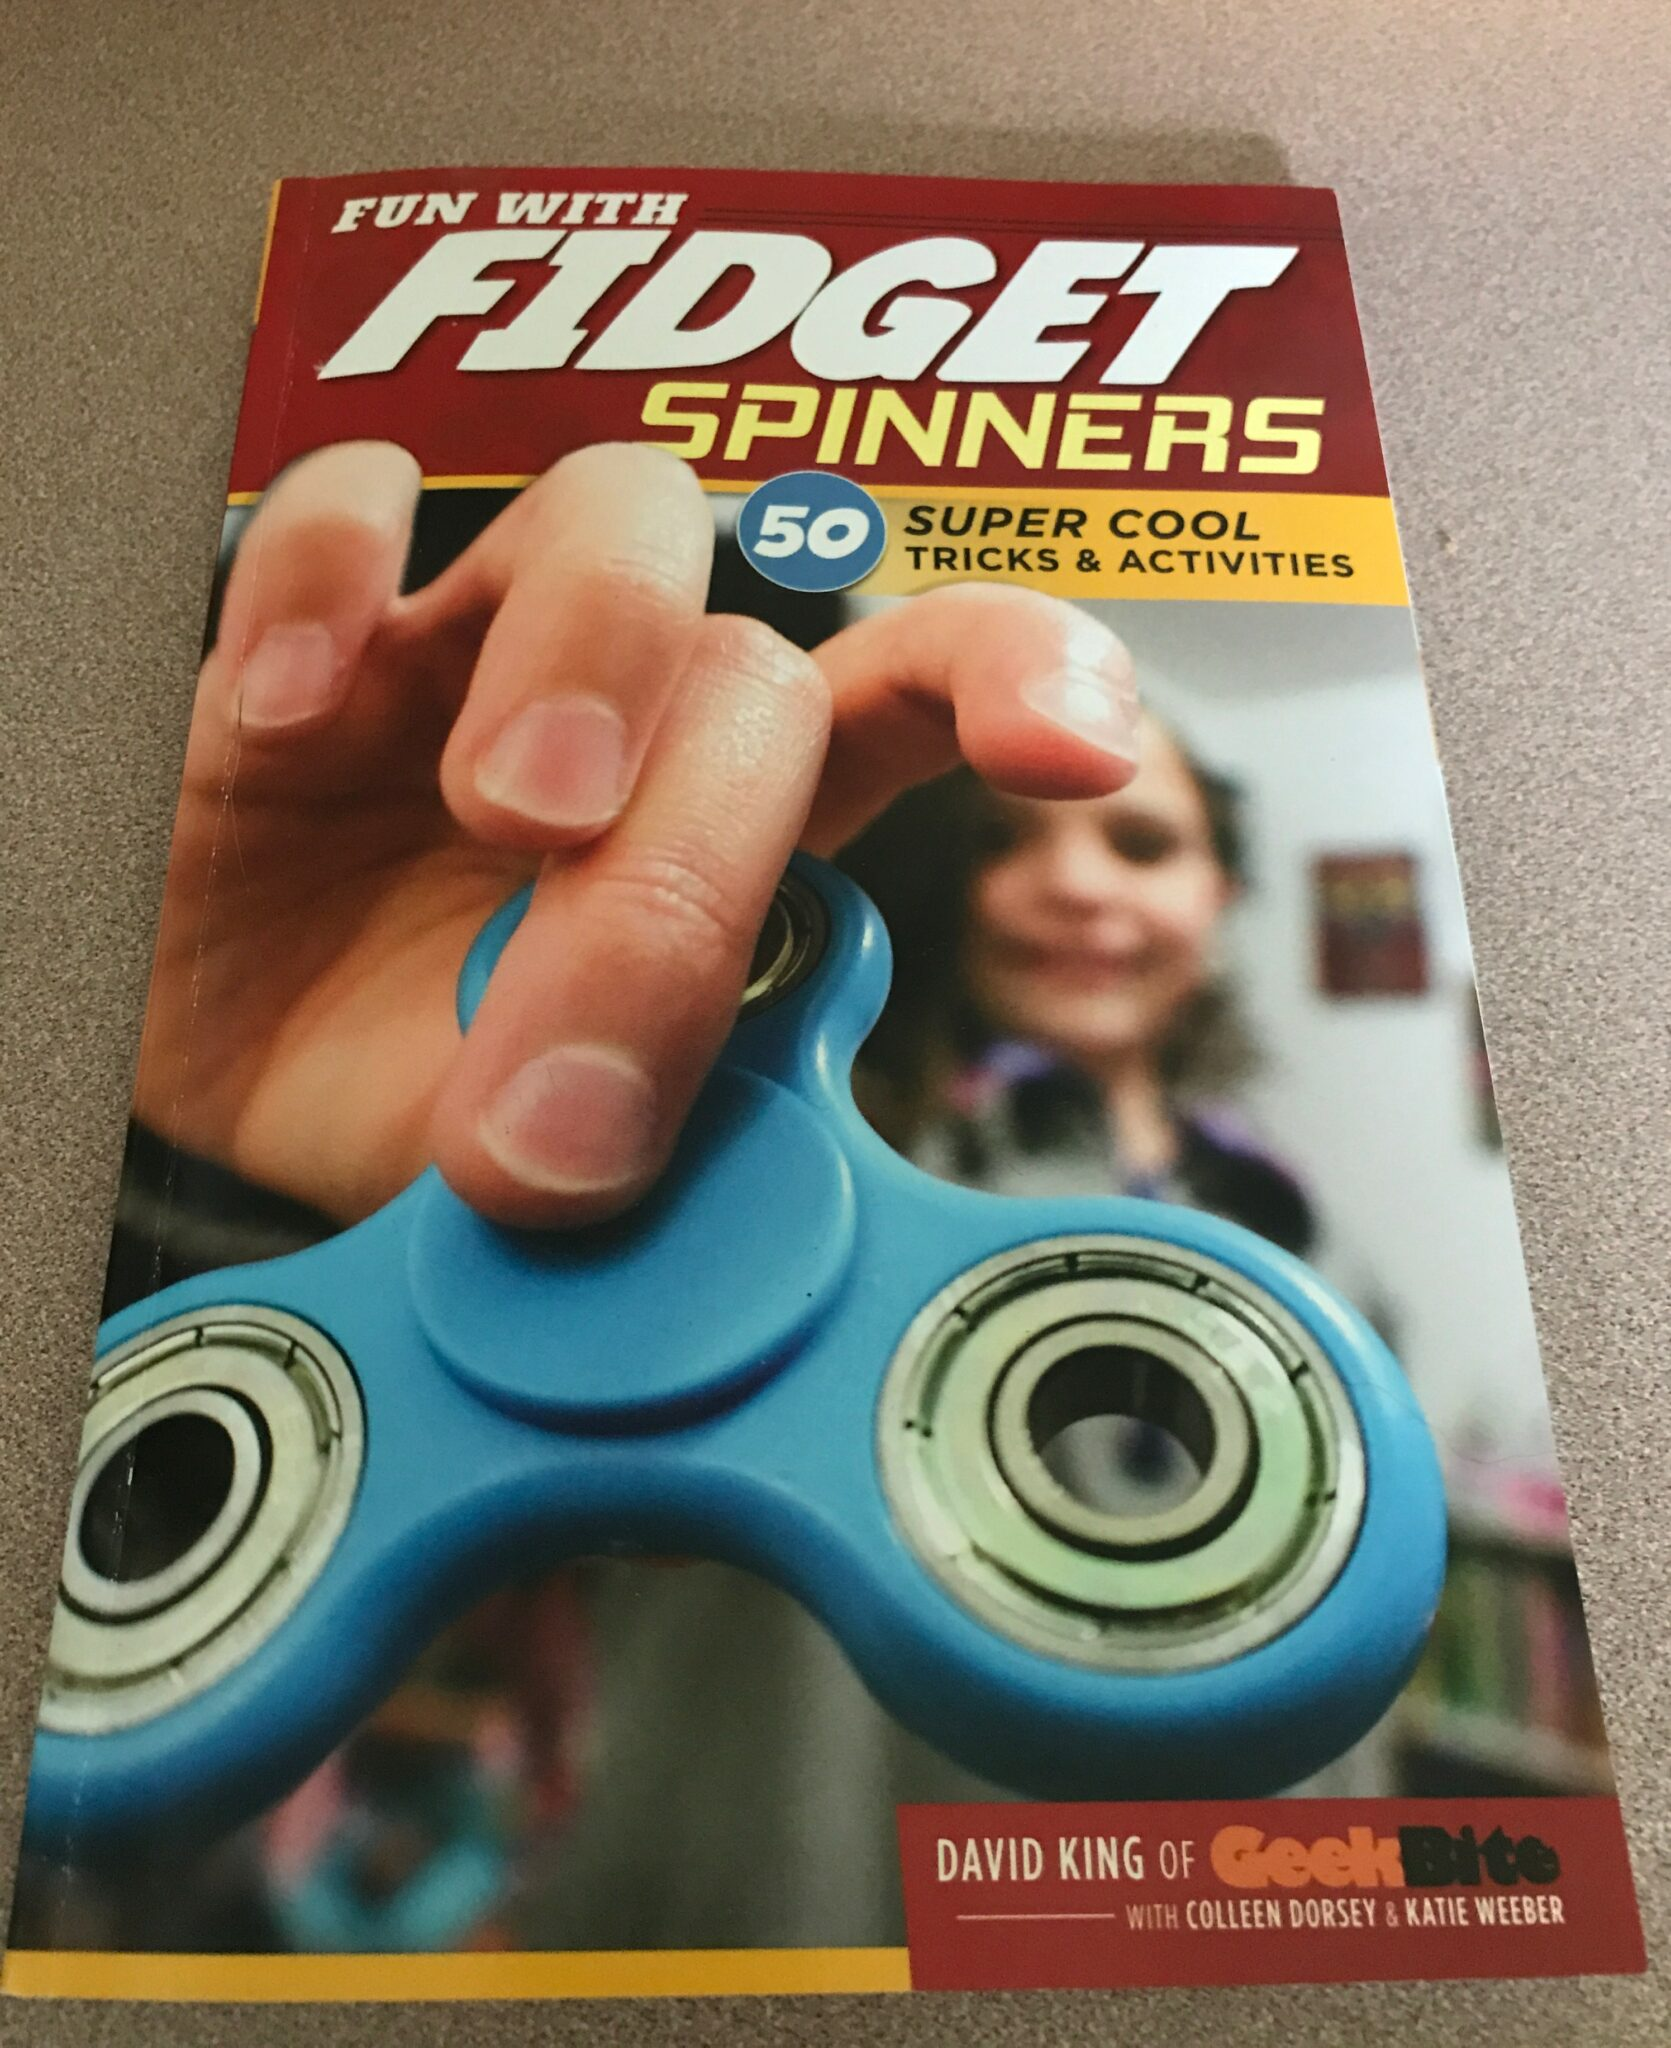 Fidget Spinner Review by Joan Mead-Matsui